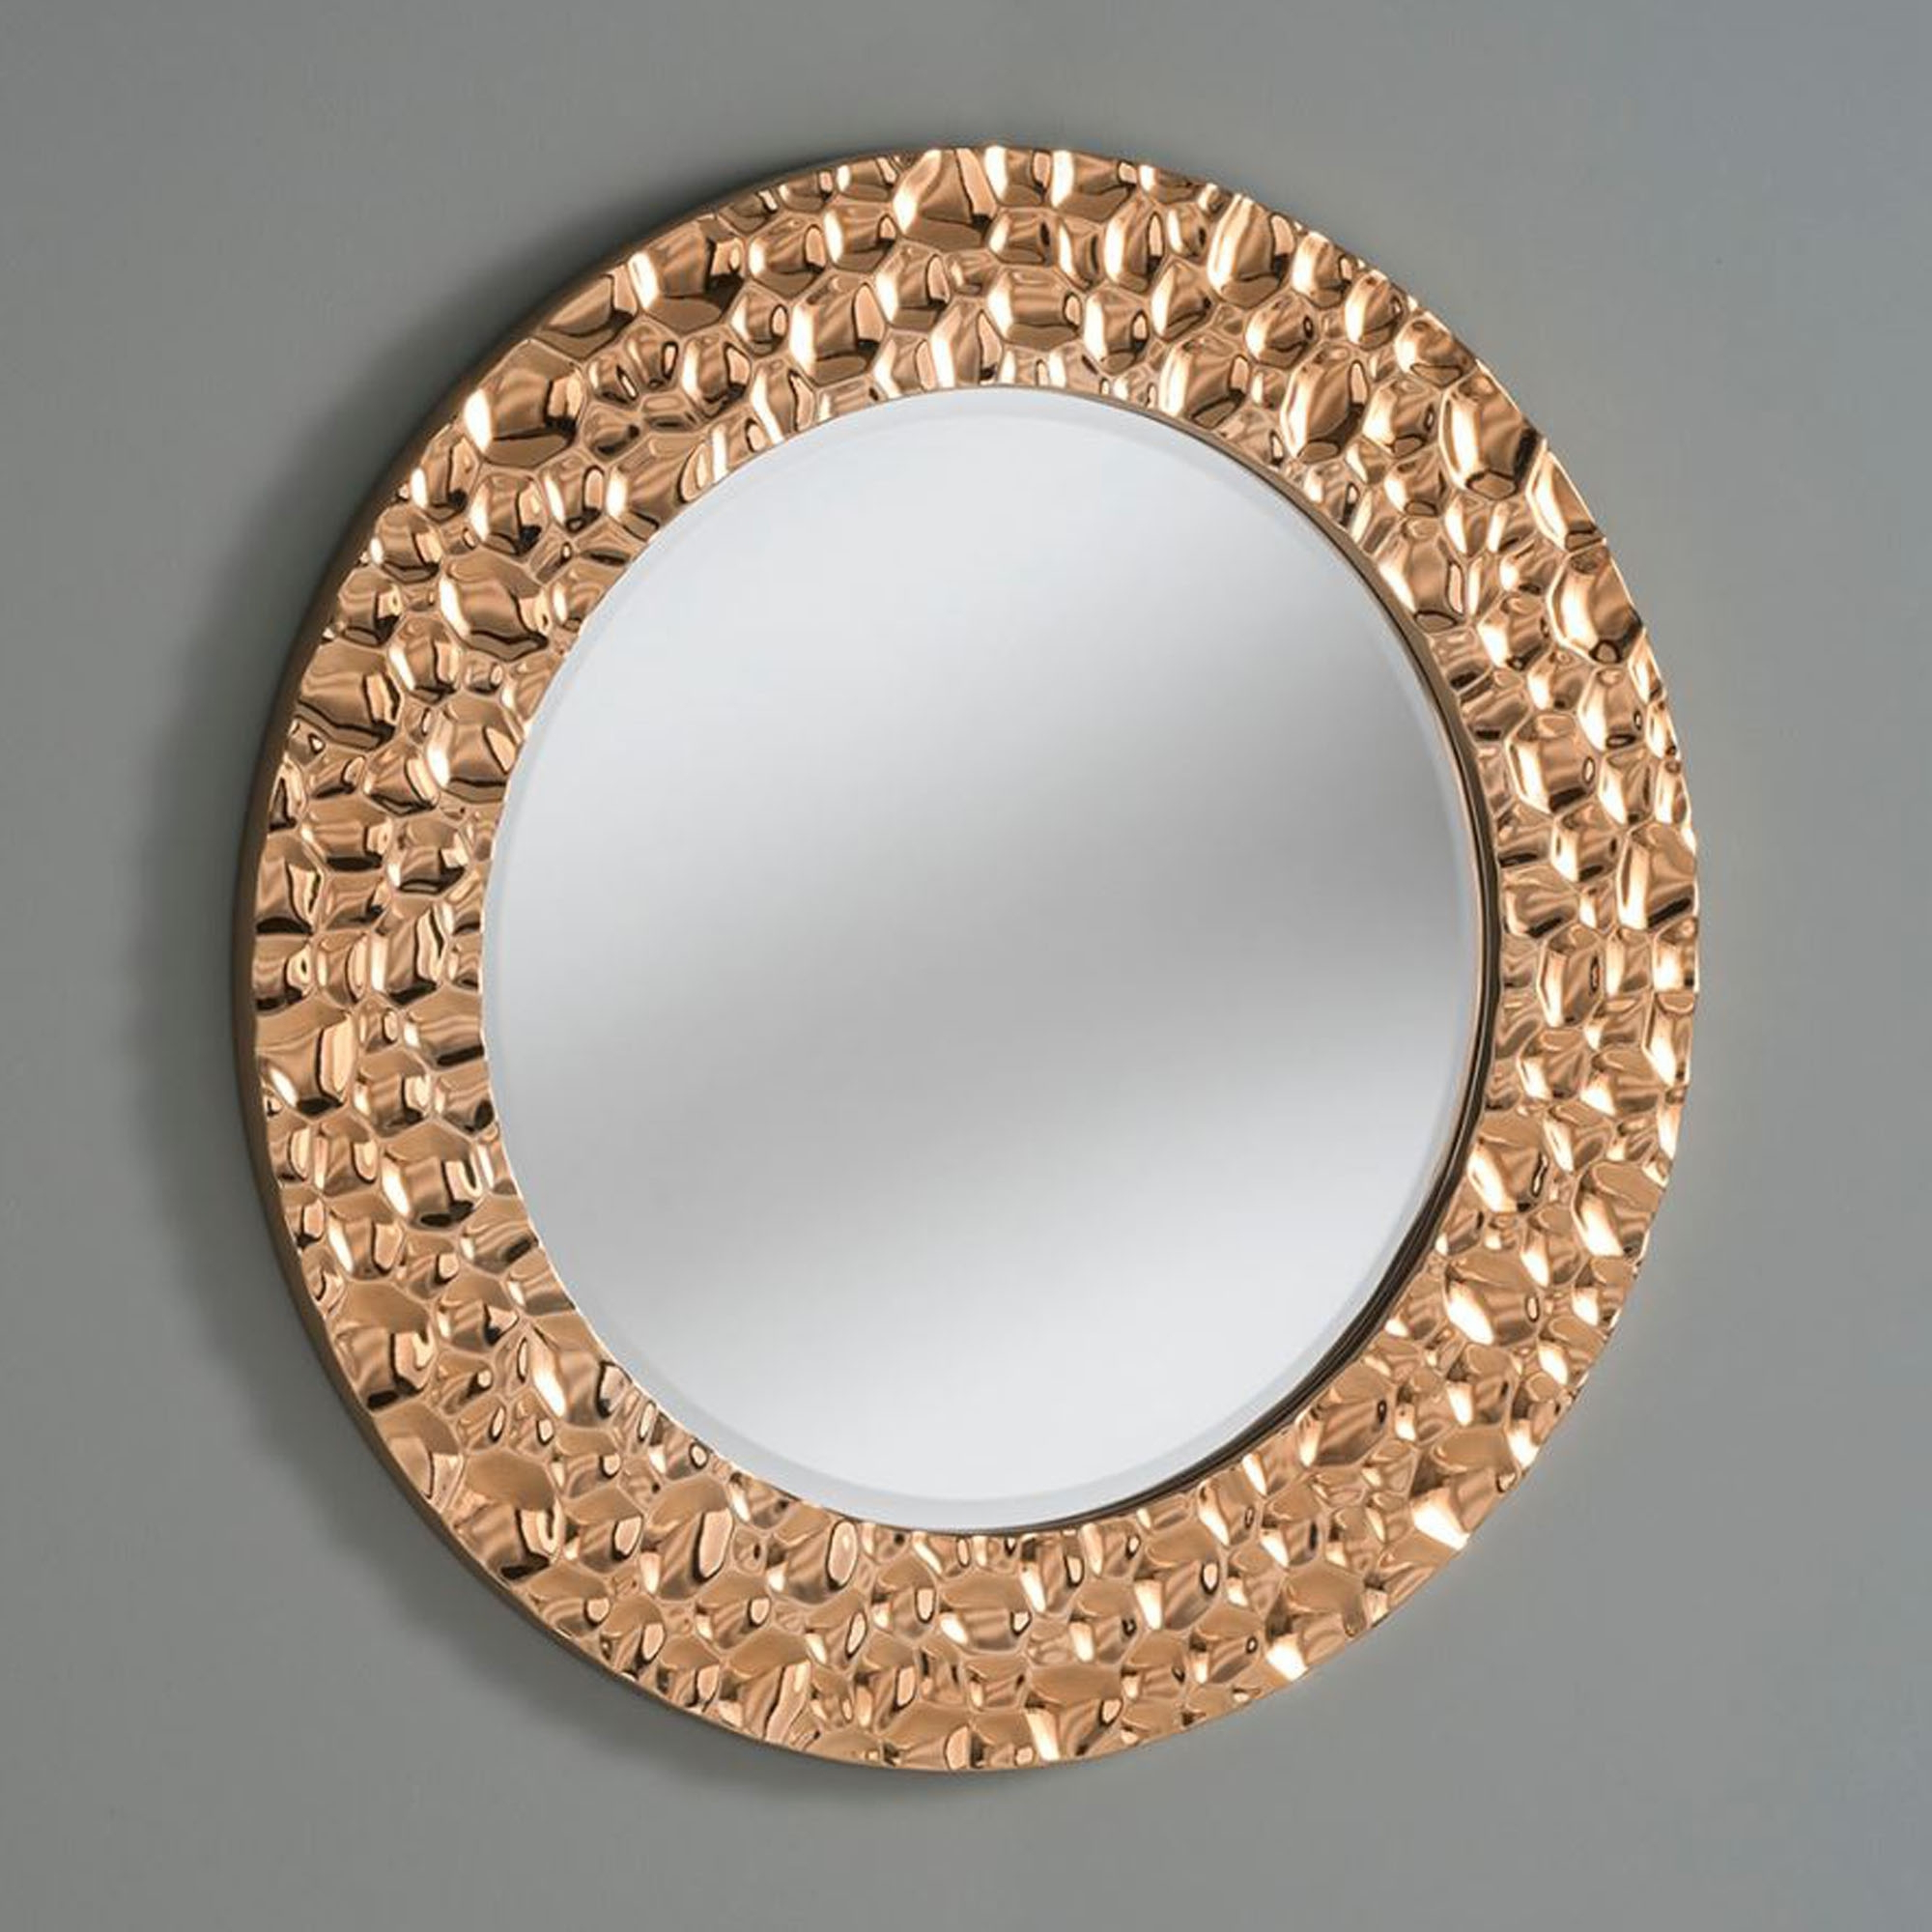 Bubble Effect Chrome Copper Circle Wall Mirror Inside 2019 Circle Wall Mirrors (View 11 of 20)